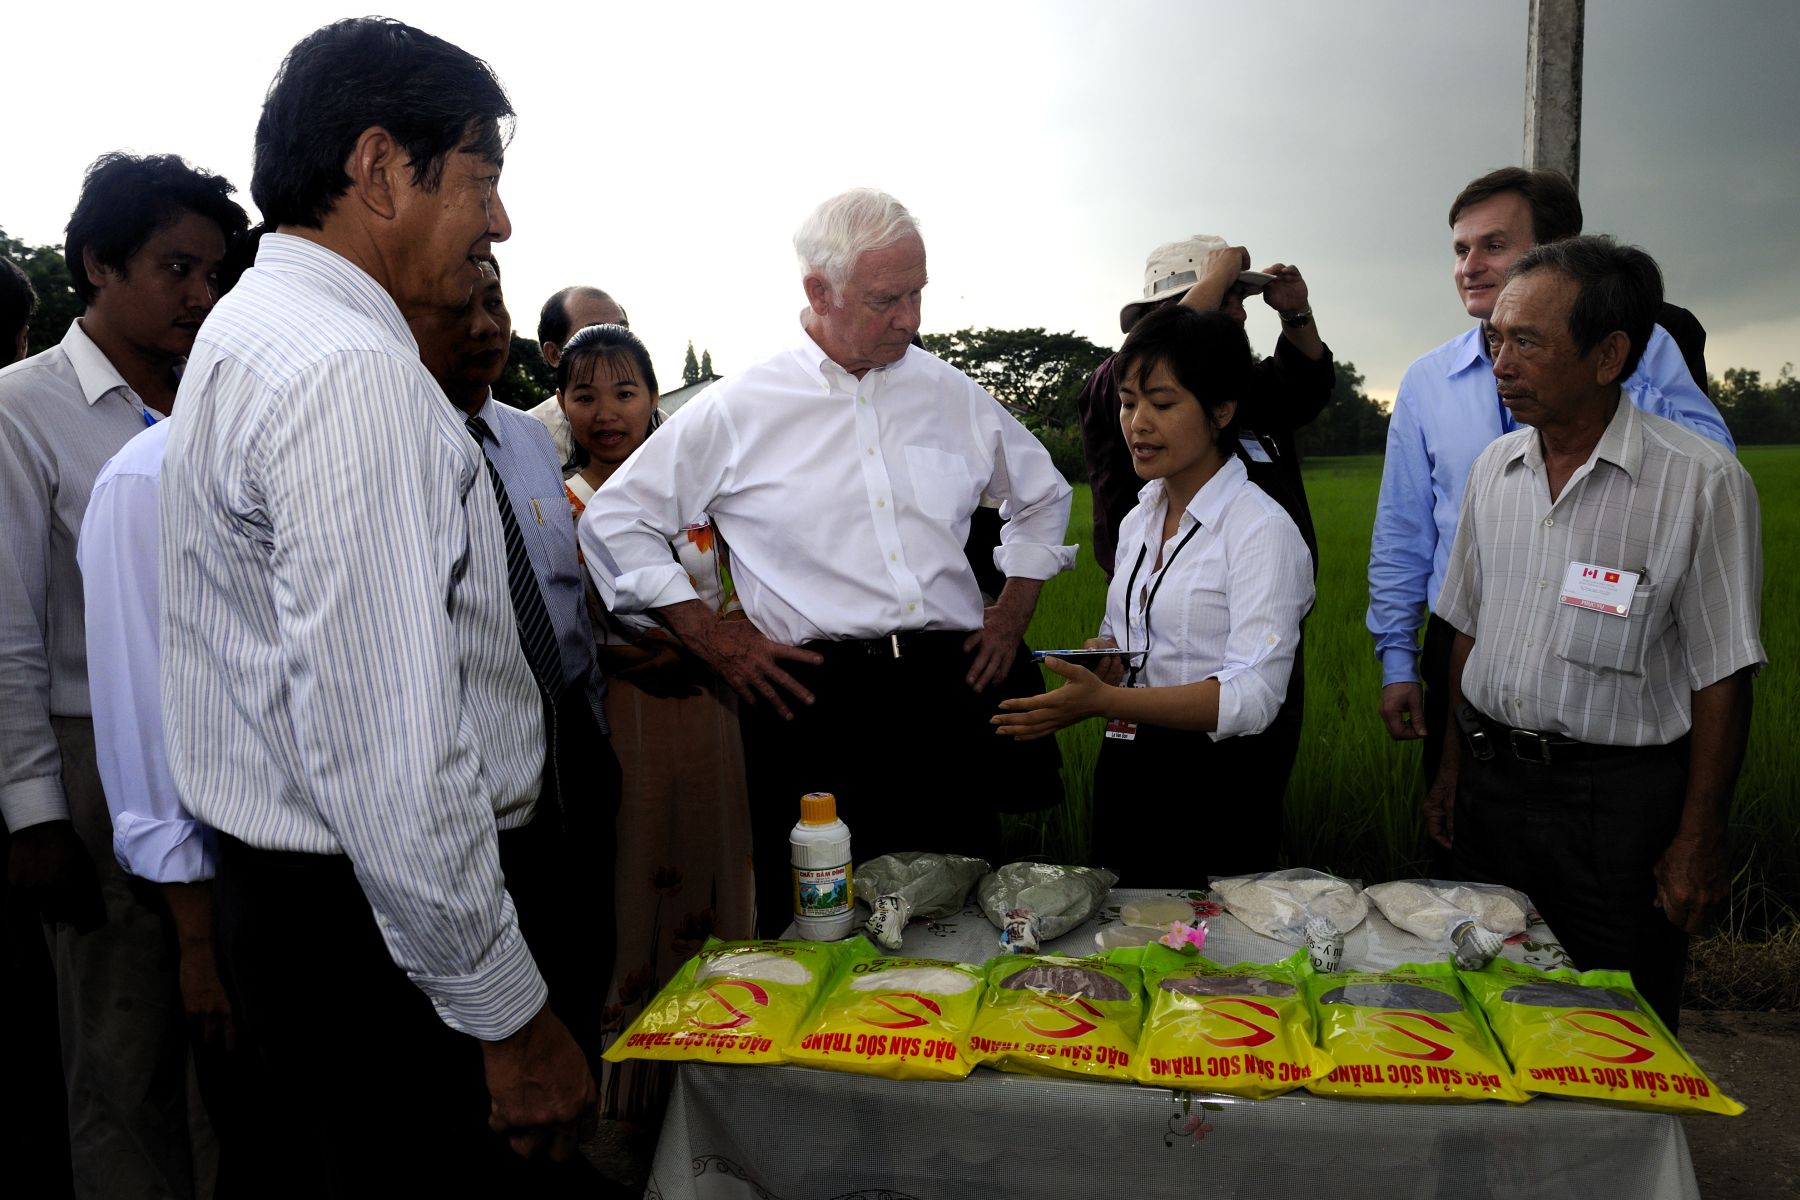 The Governor General and Canadian delegates witnessed how technical and commercial innovations, supported through Canadian International Development Agency (CIDA) projects, have improved the livelihood of farmers in Vietnam's Mekong Delta.